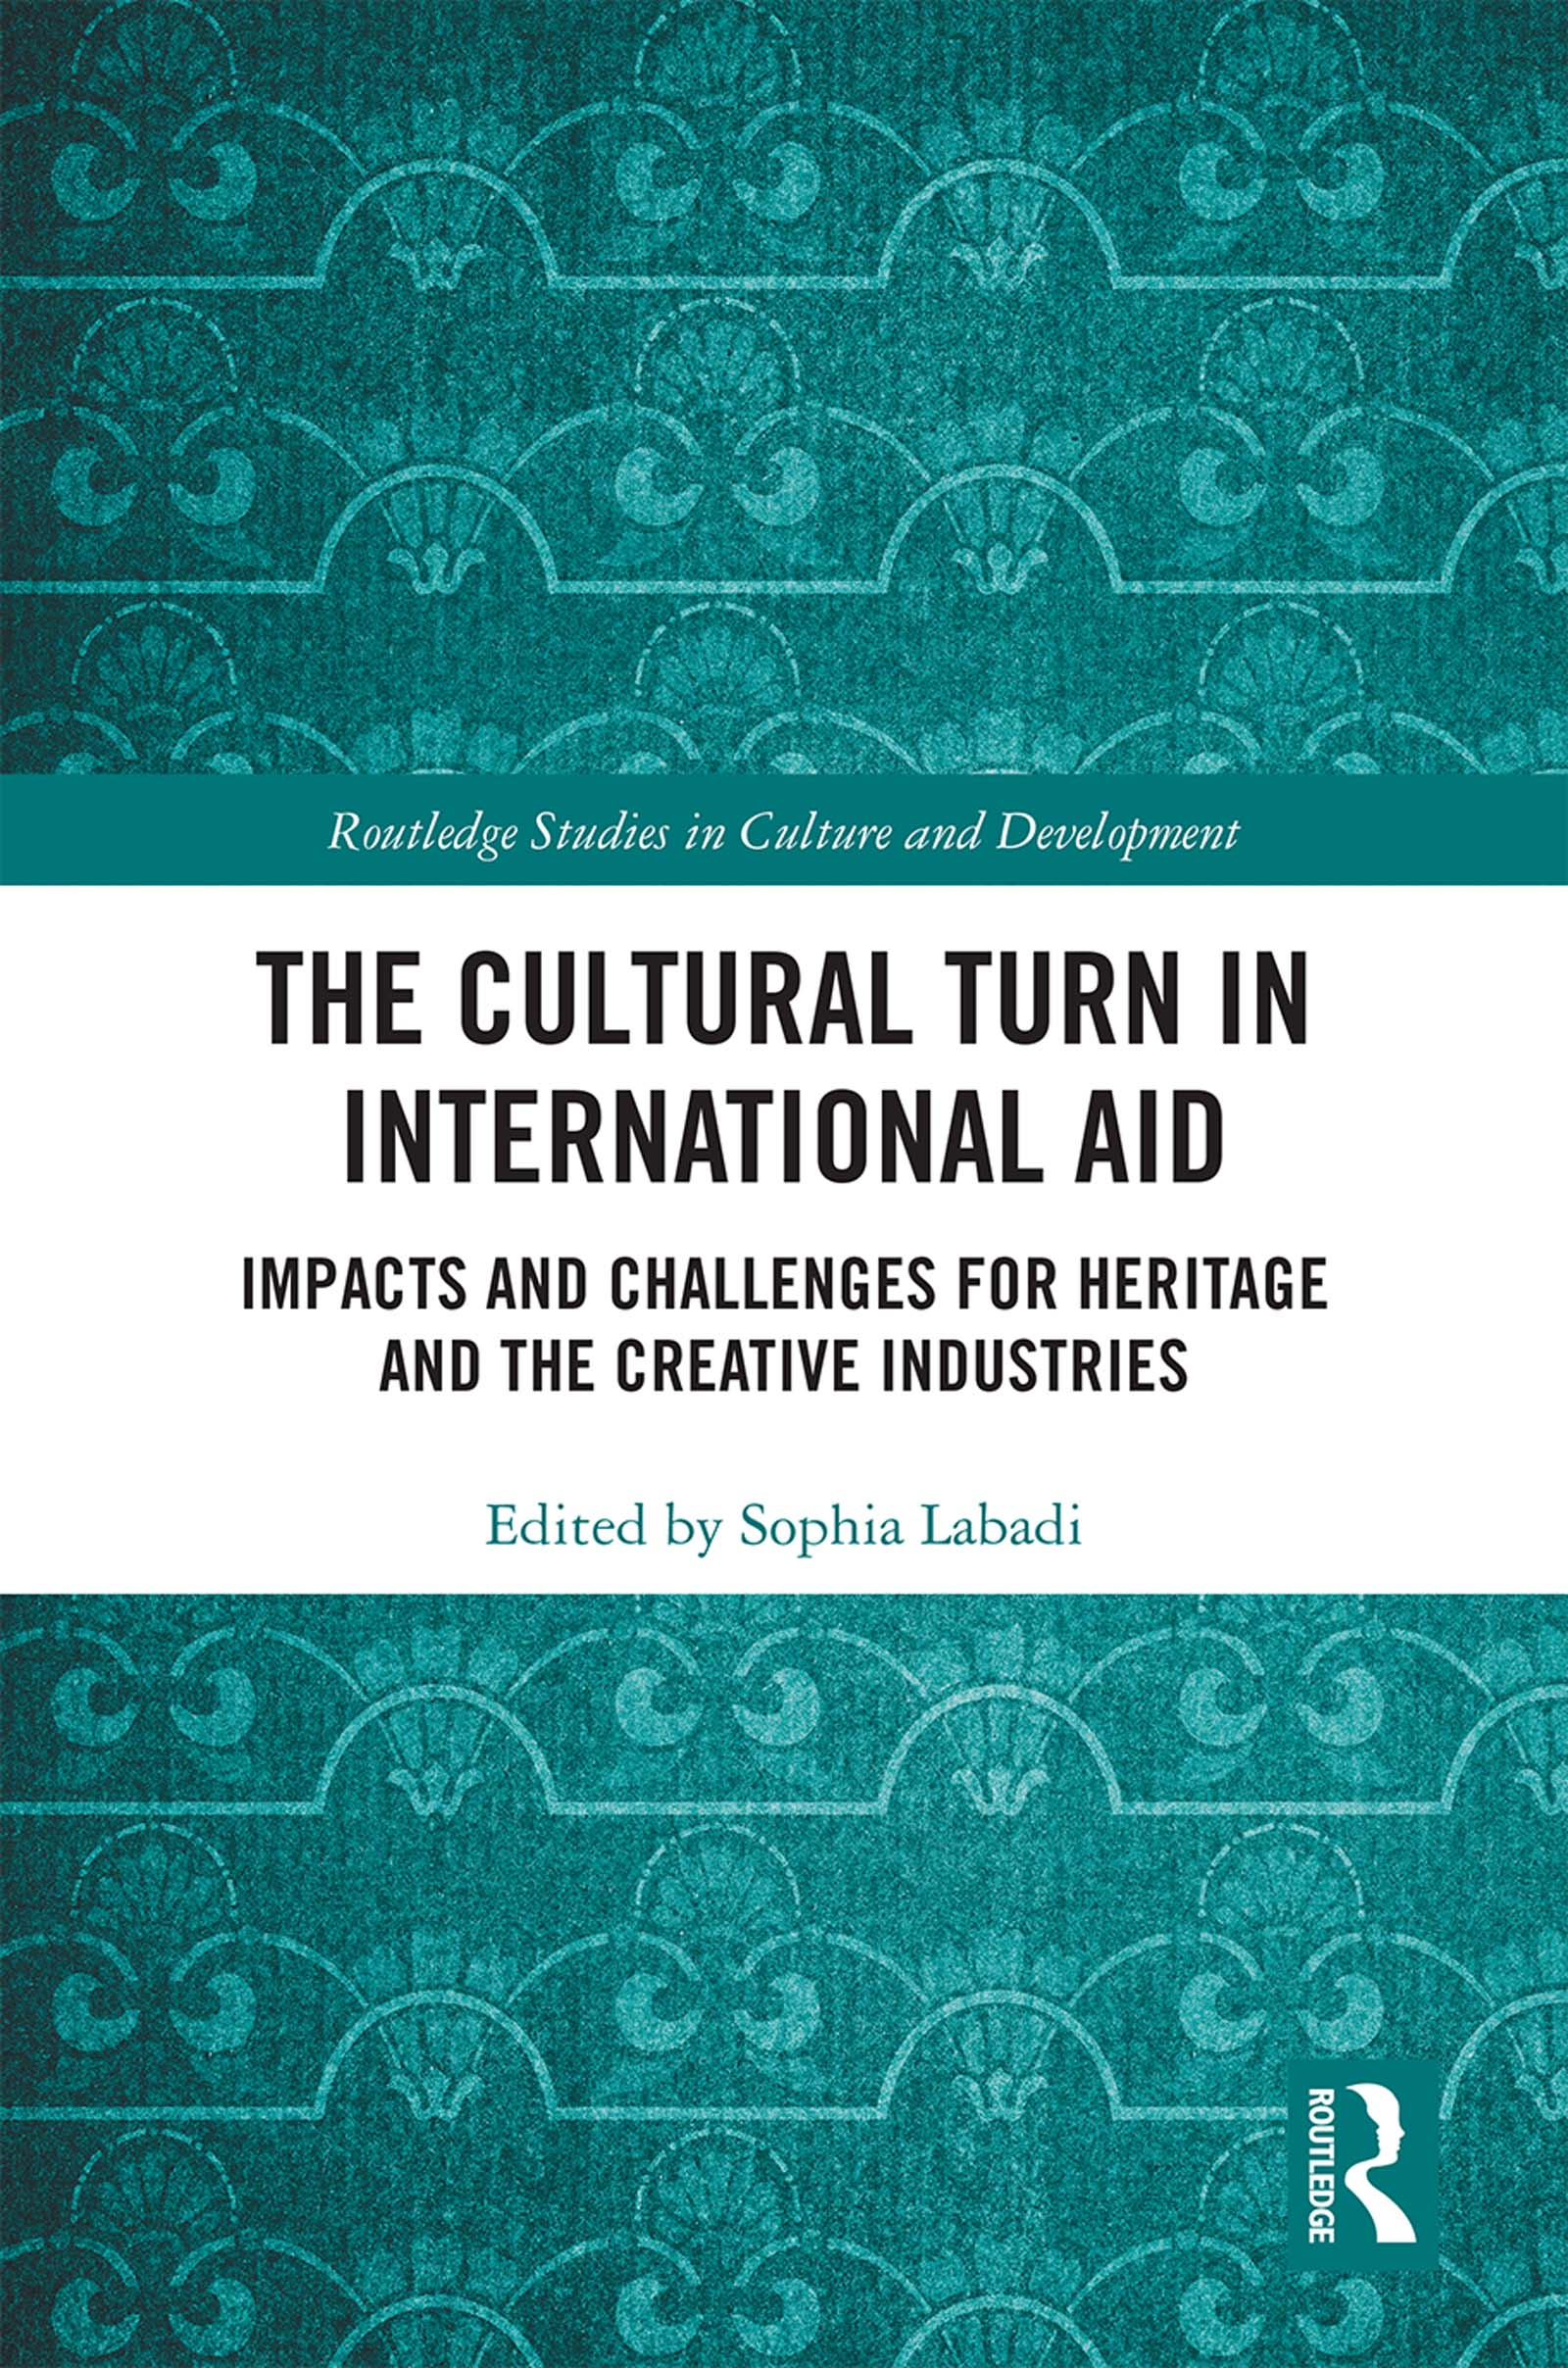 The Cultural Turn in International Aid: Impacts and Challenges for Heritage and the Creative Industries book cover